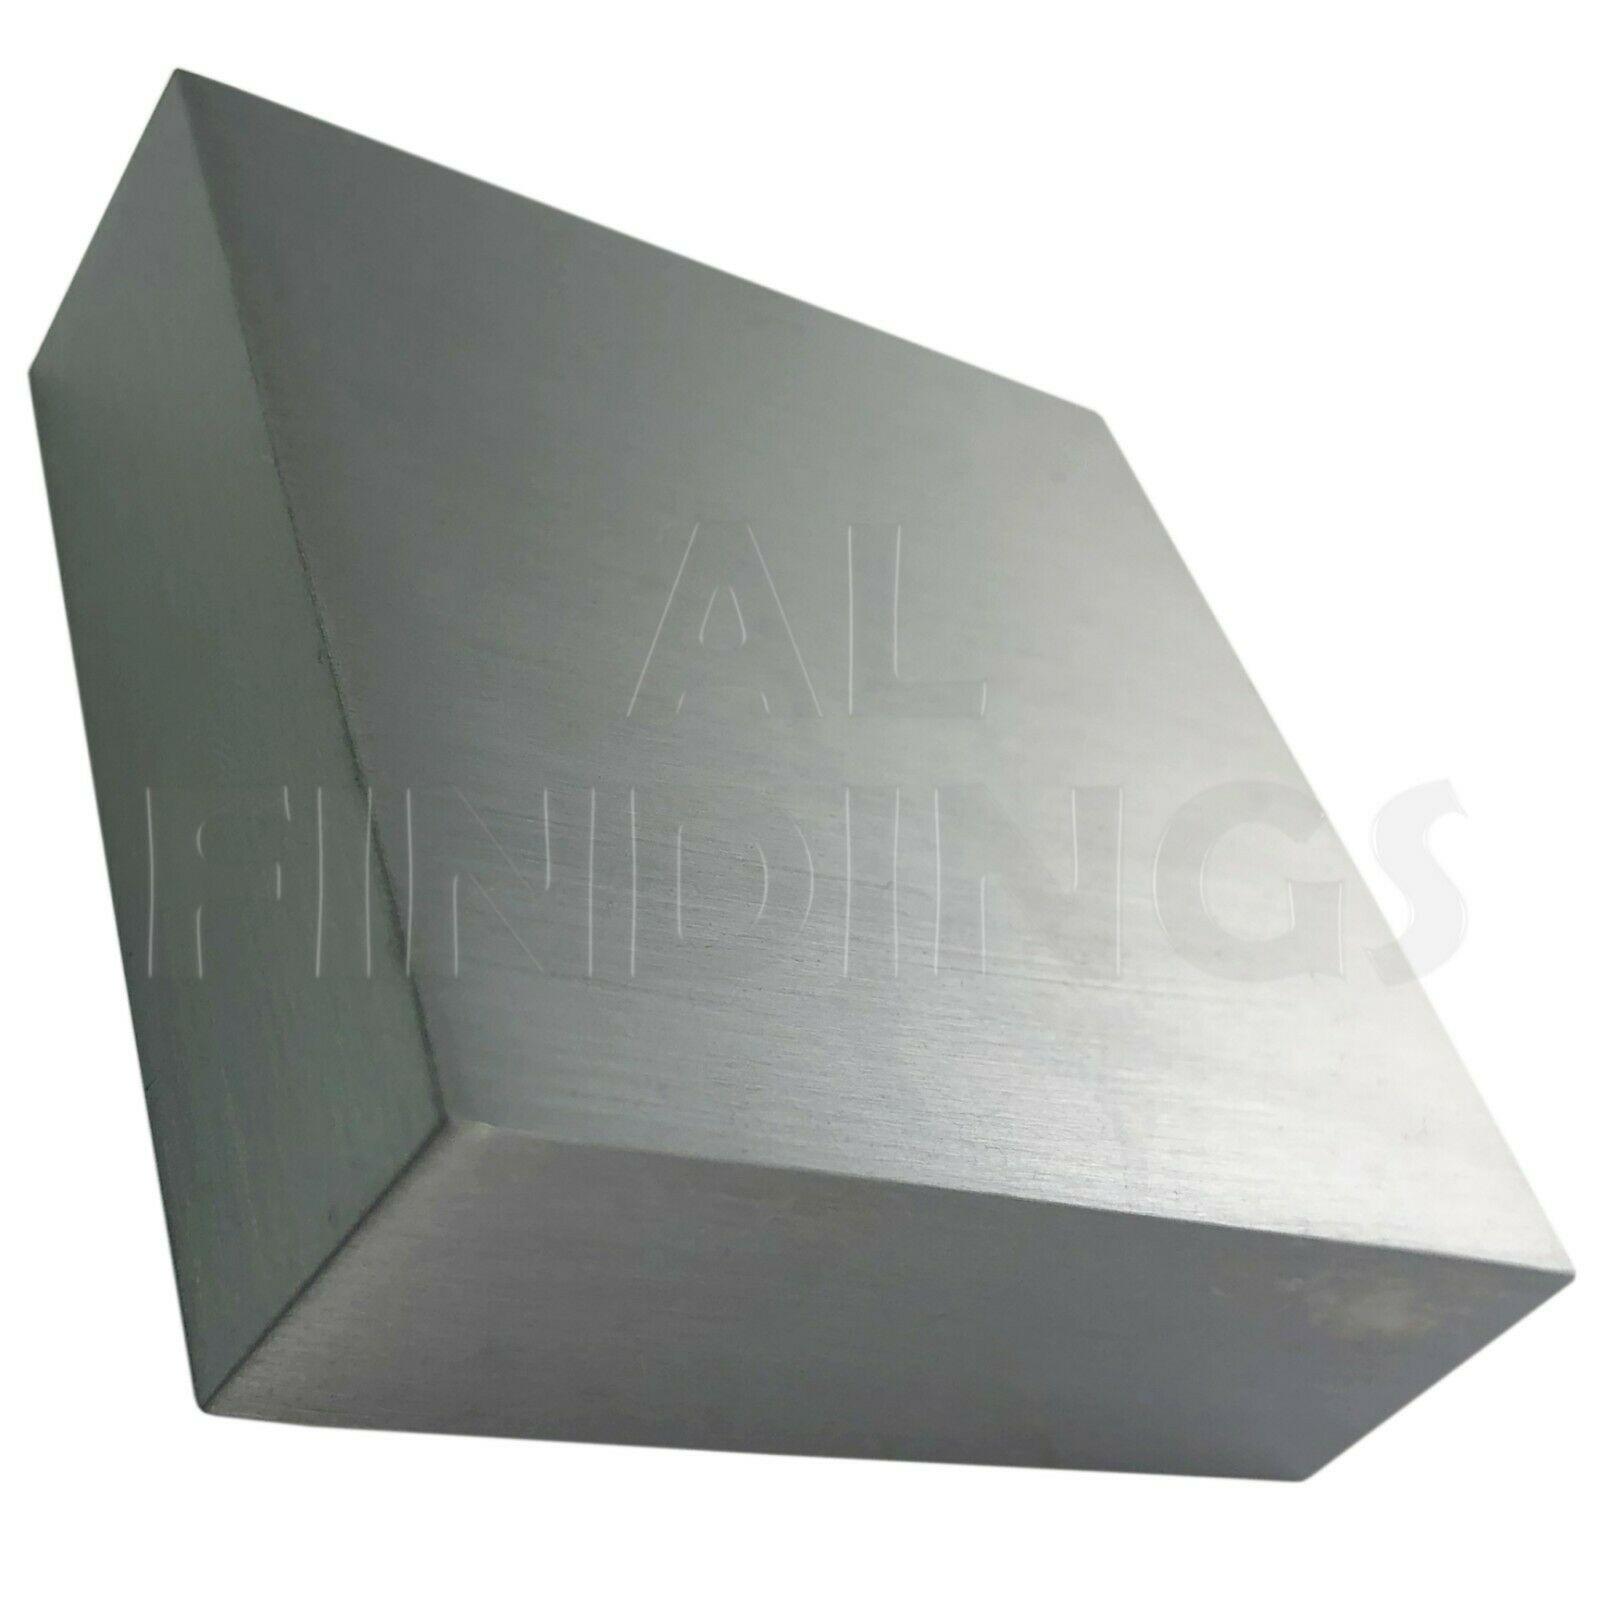 "SOLID STEEL DOMING BENCH BLOCK ANVIL 2.5/"" X 2.5/"" X 1/""  64 x 64 x 20mm CRAFT TOOL"